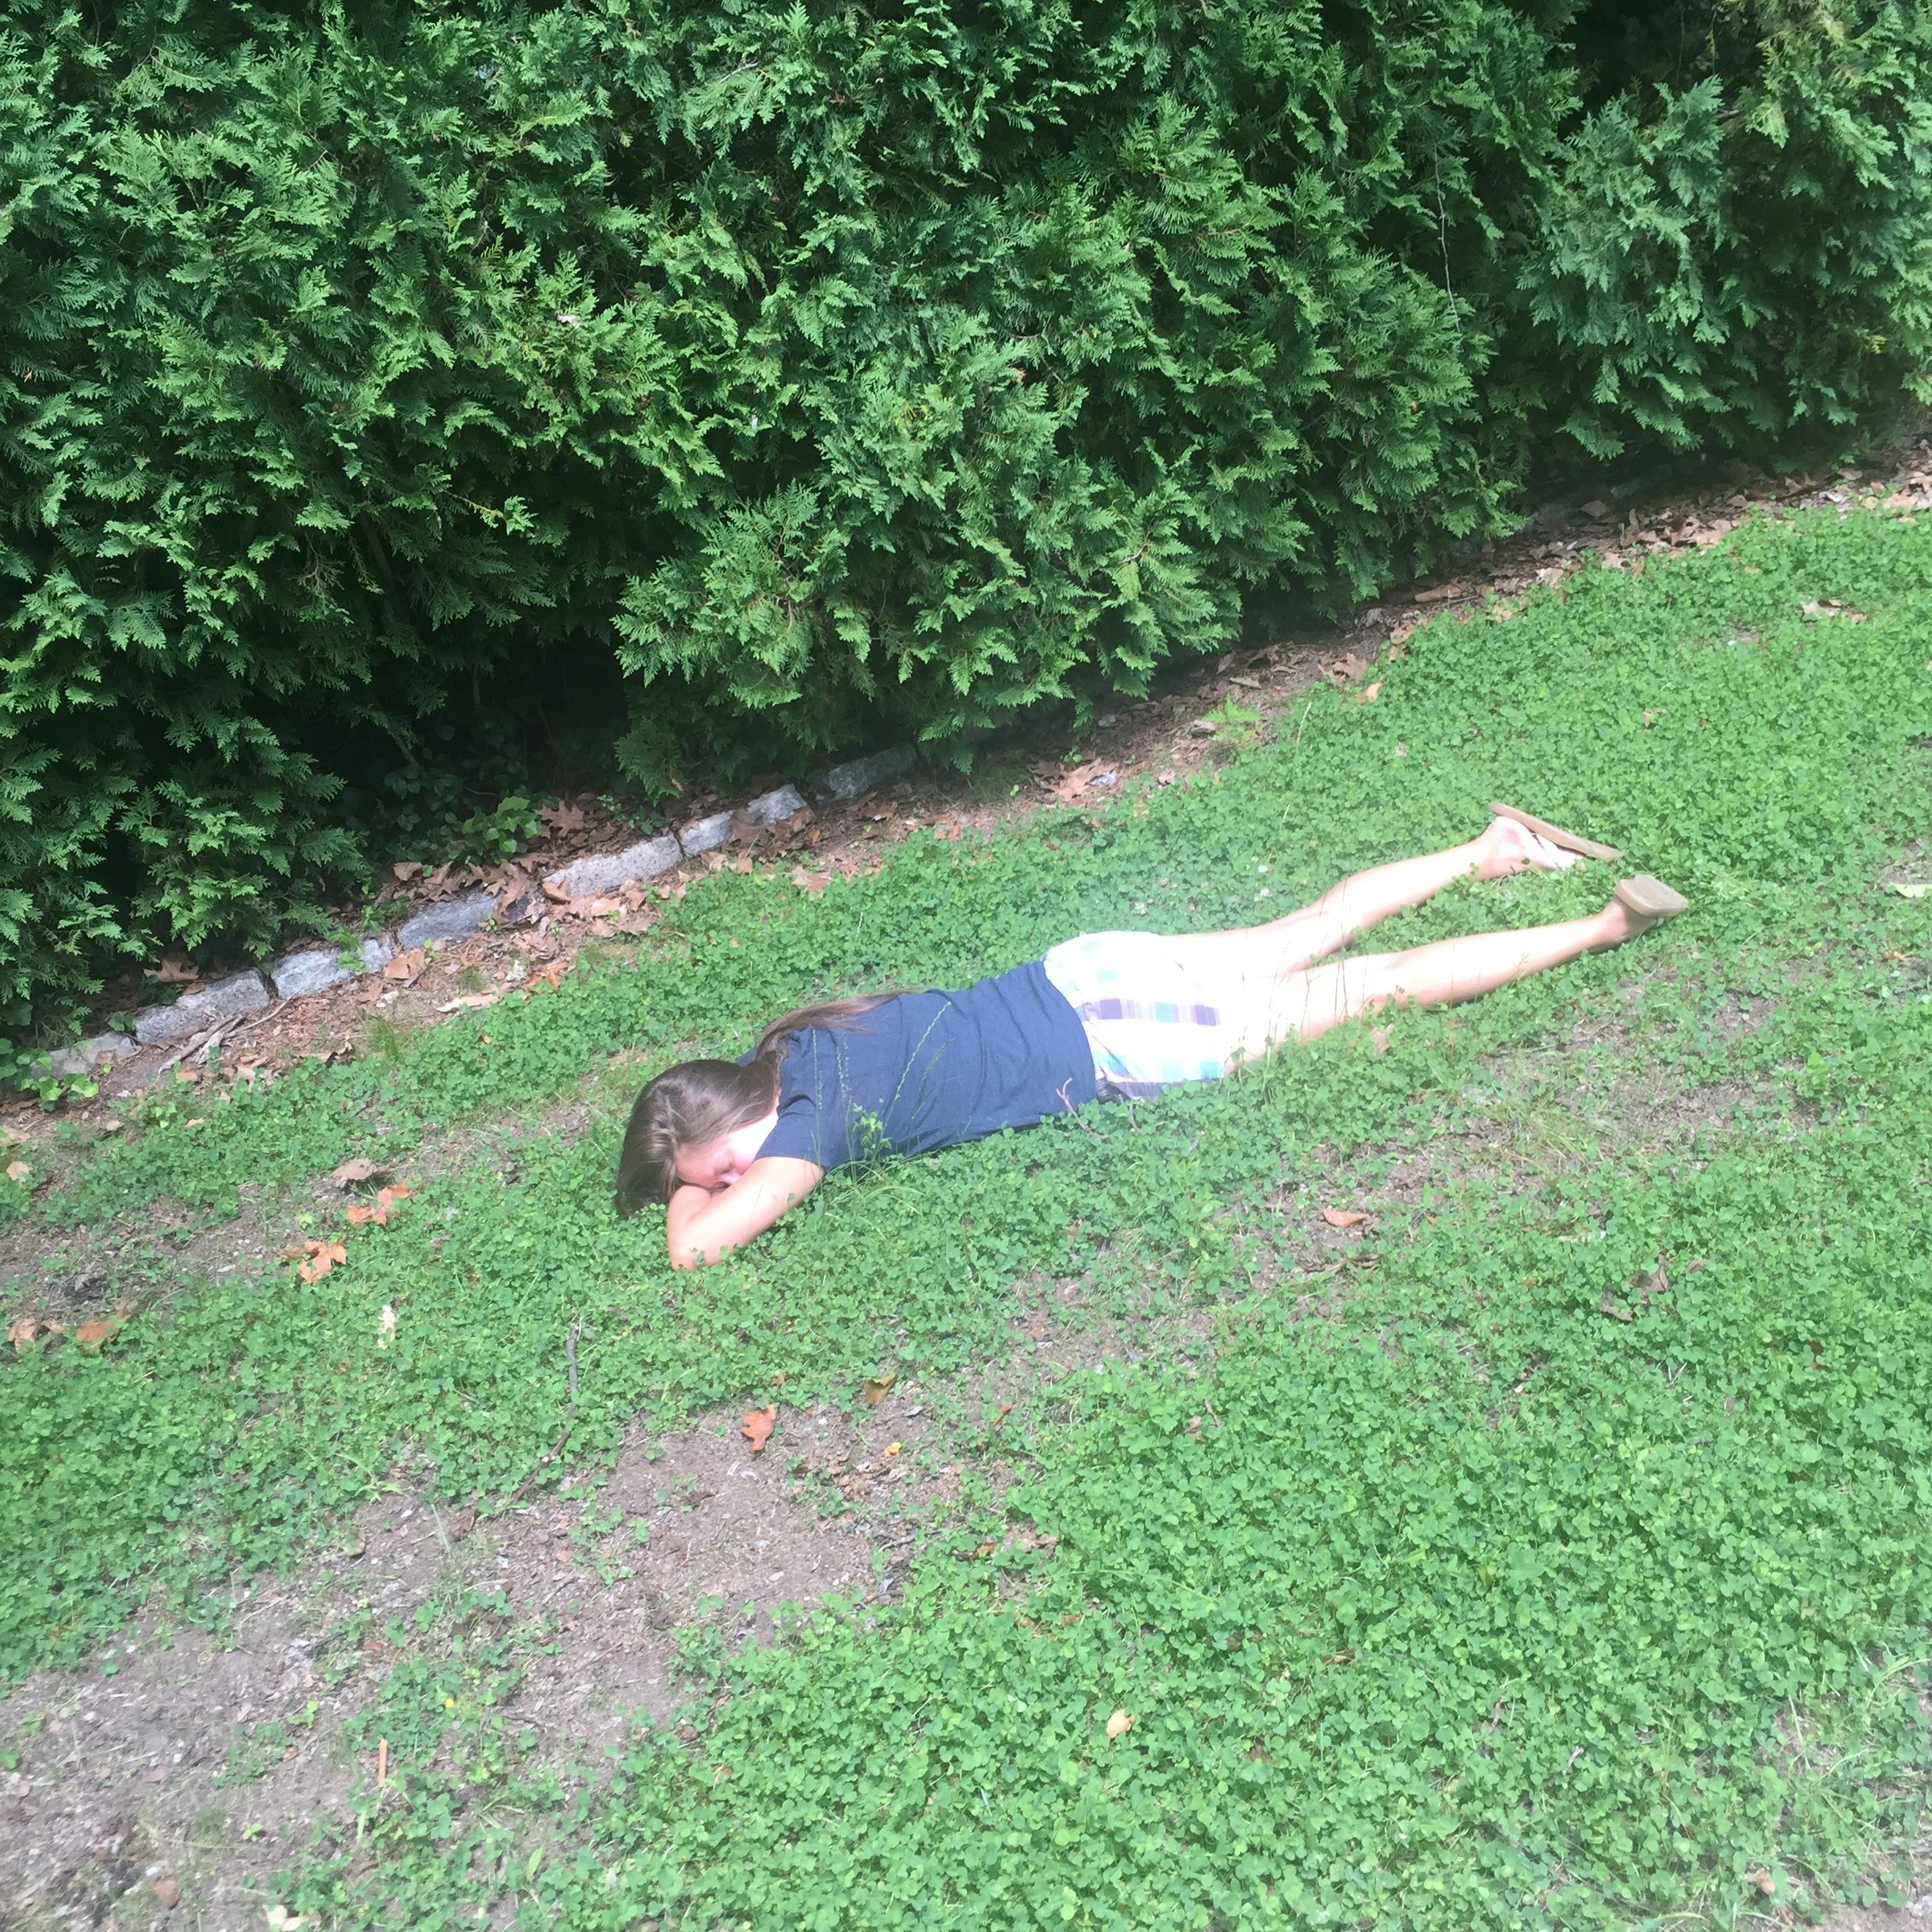 And then they came to see me in July...of all the pictures on my phone this is my absolute favorite. My sister napping in our backyard.